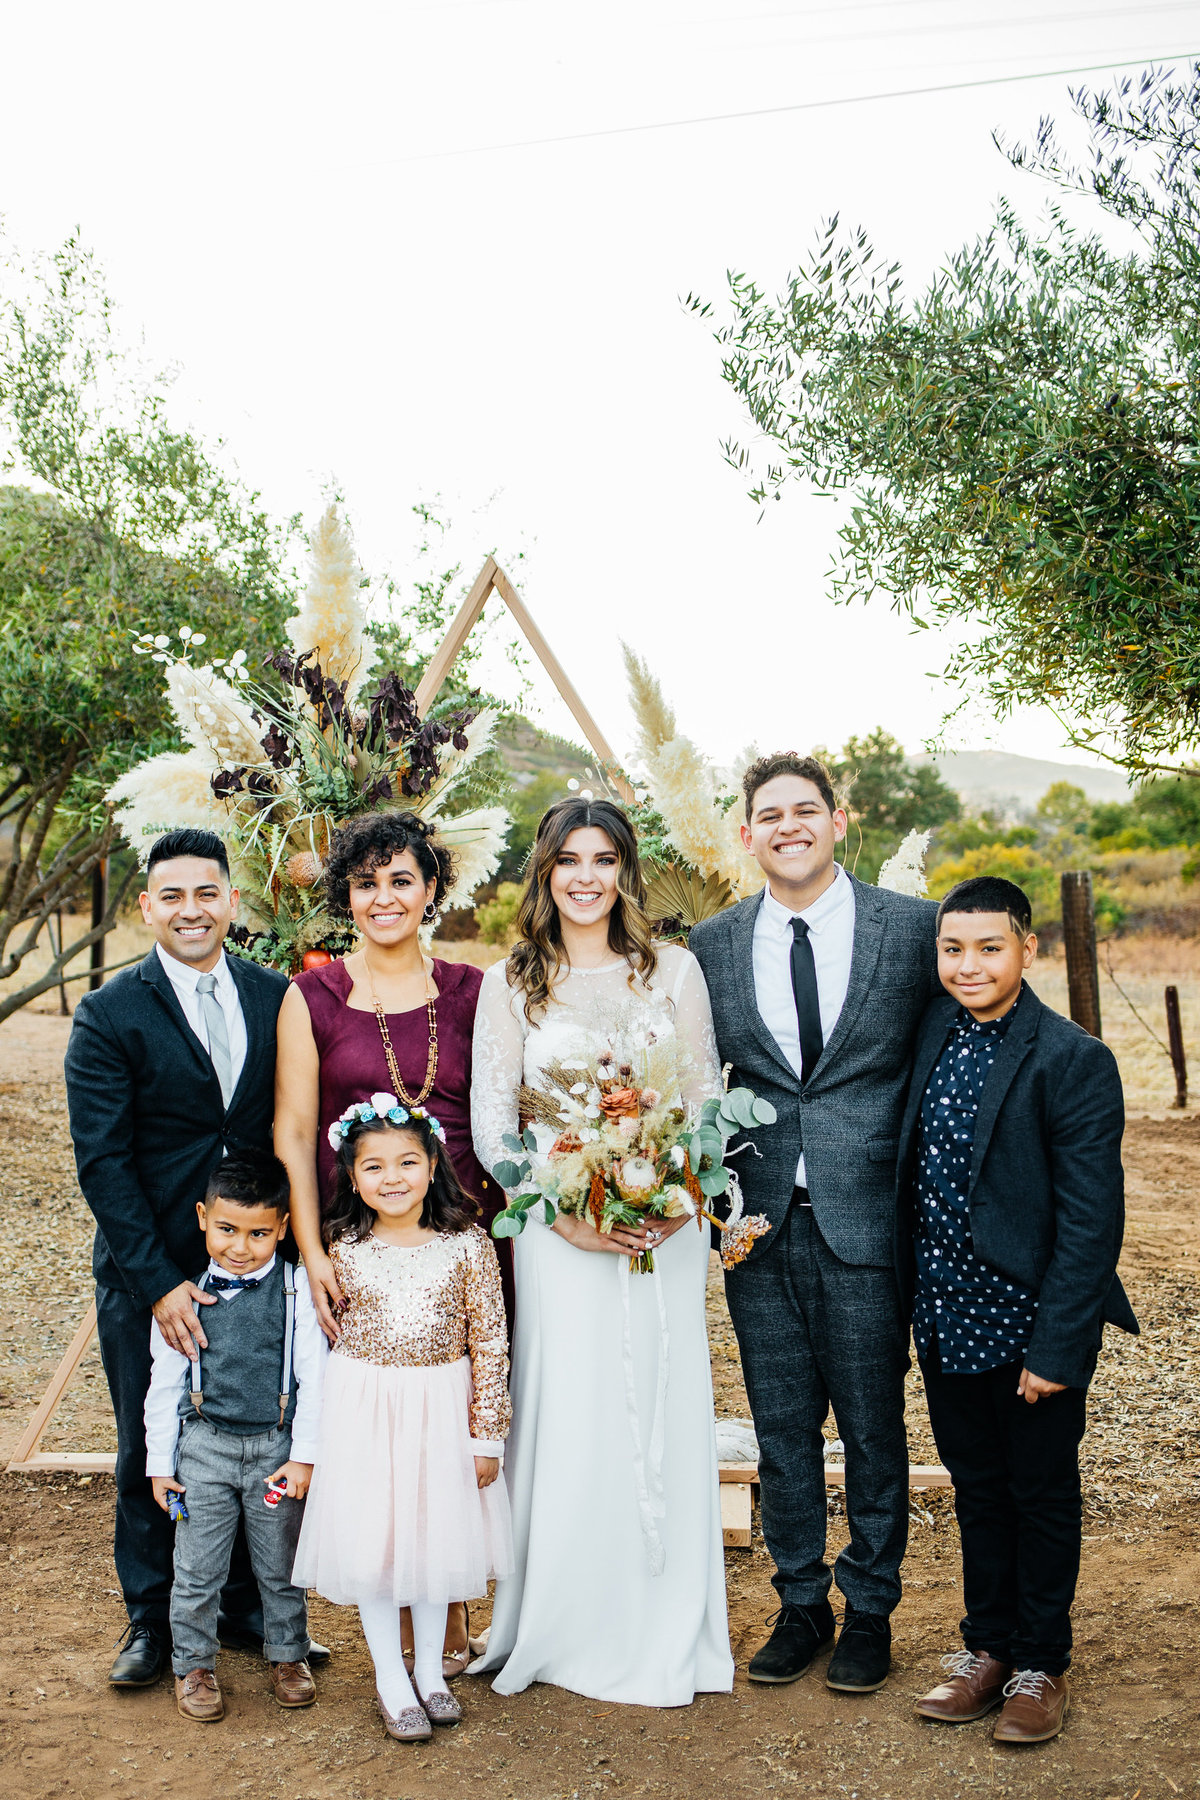 family-photos-socal-wedding-photographer-erin-marton-photography-8